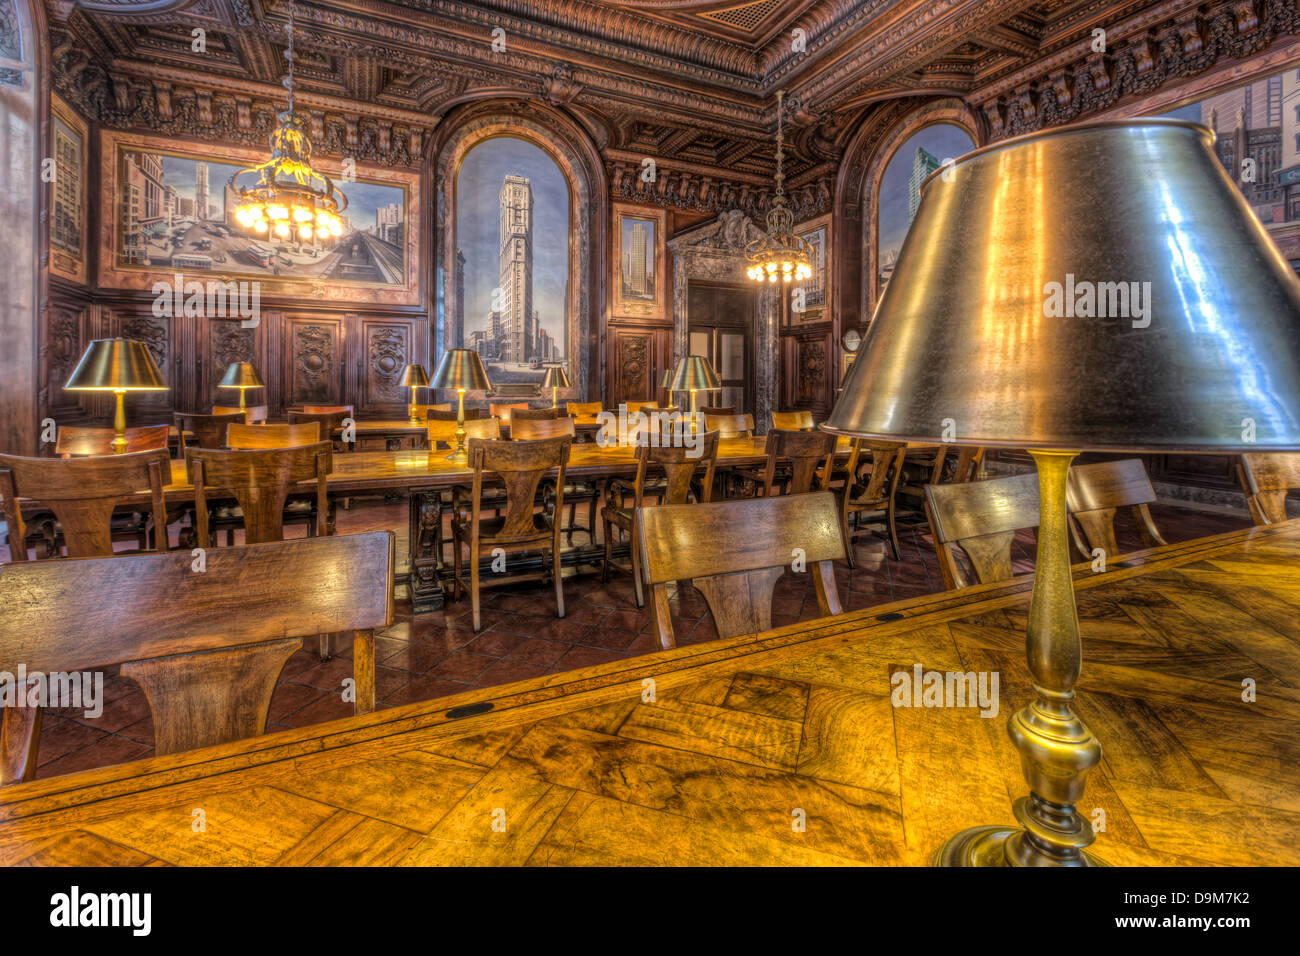 Wood paneling and murals decorate the New York Public Library's DeWitt Wallace Periodicals Room. - Stock Image